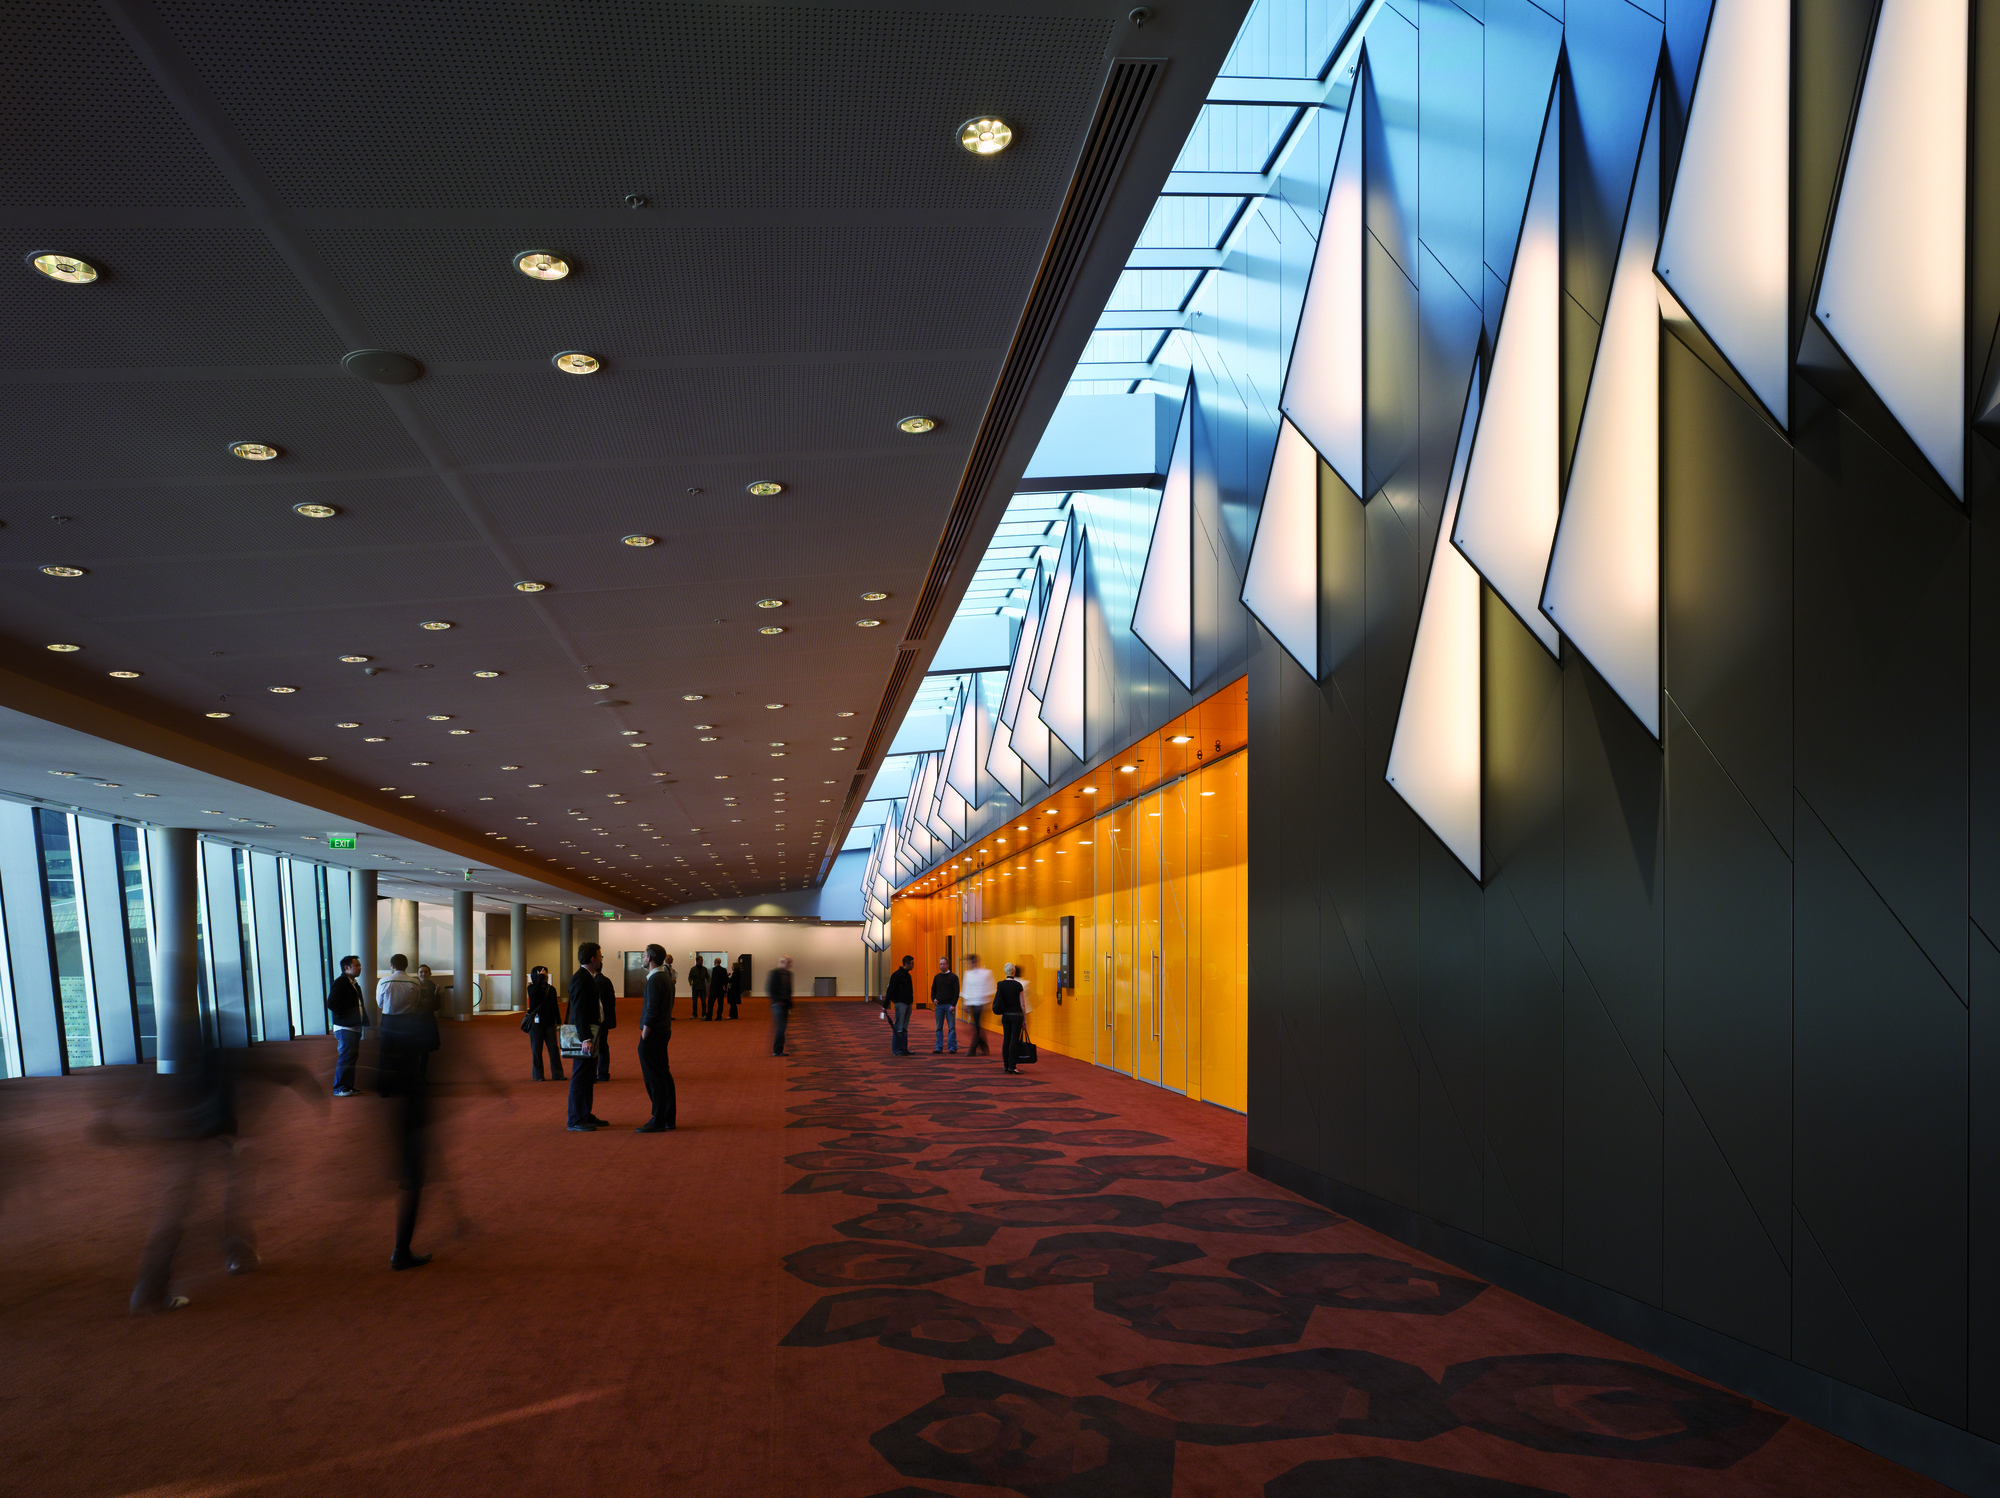 Gallery of Melbourne Convention and Exhibition Centre